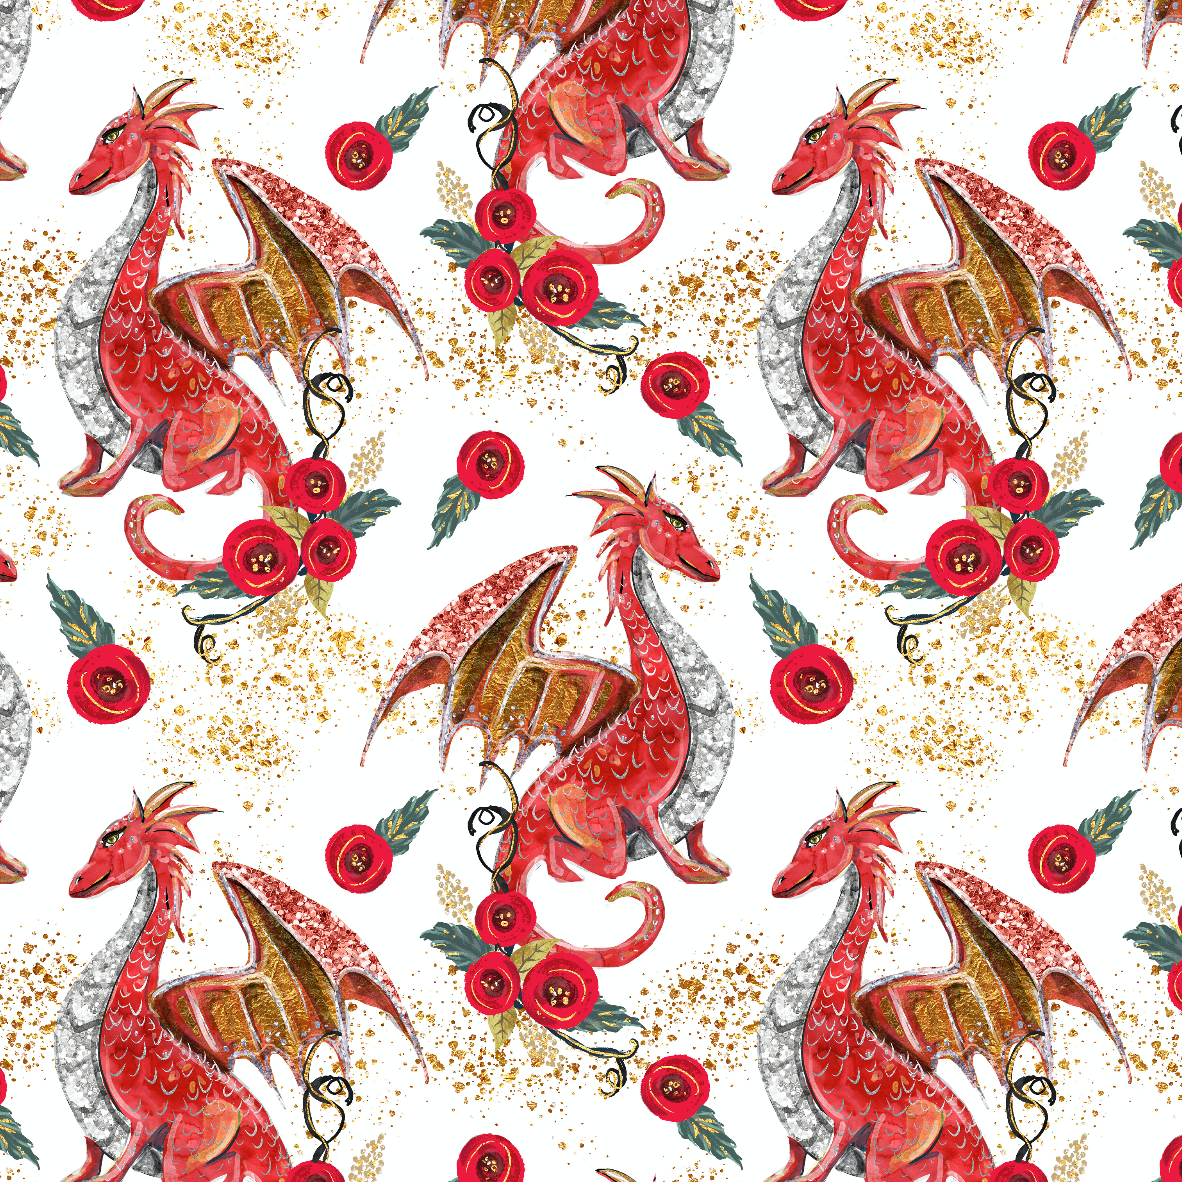 IN STOCK - Dragons Red - WOVEN COTTON